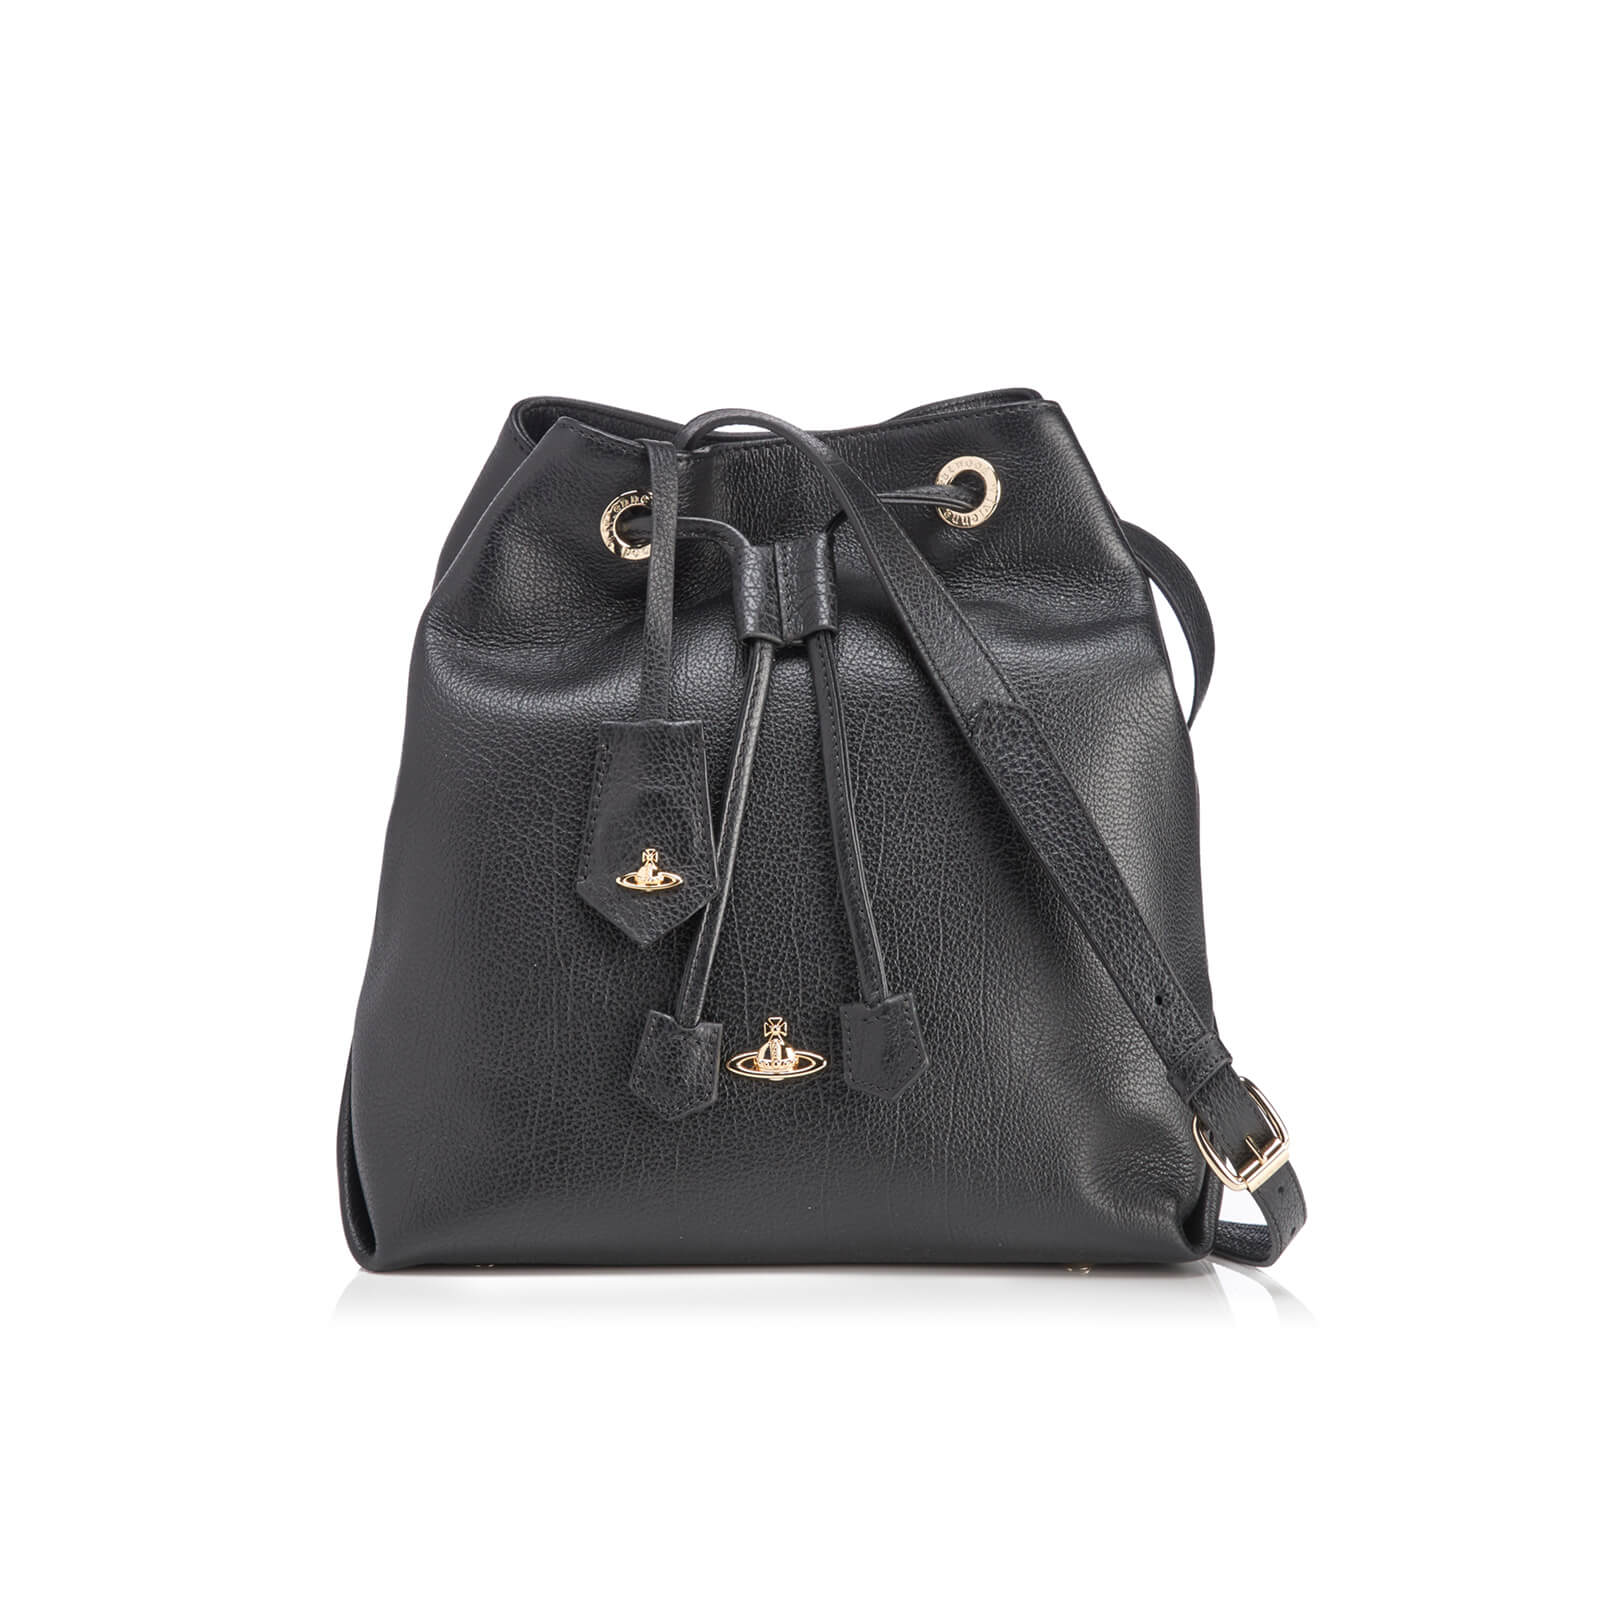 79285e1a153 Vivienne Westwood Women's Balmoral Grain Leather Bucket Bag - Black - Free  UK Delivery over £50